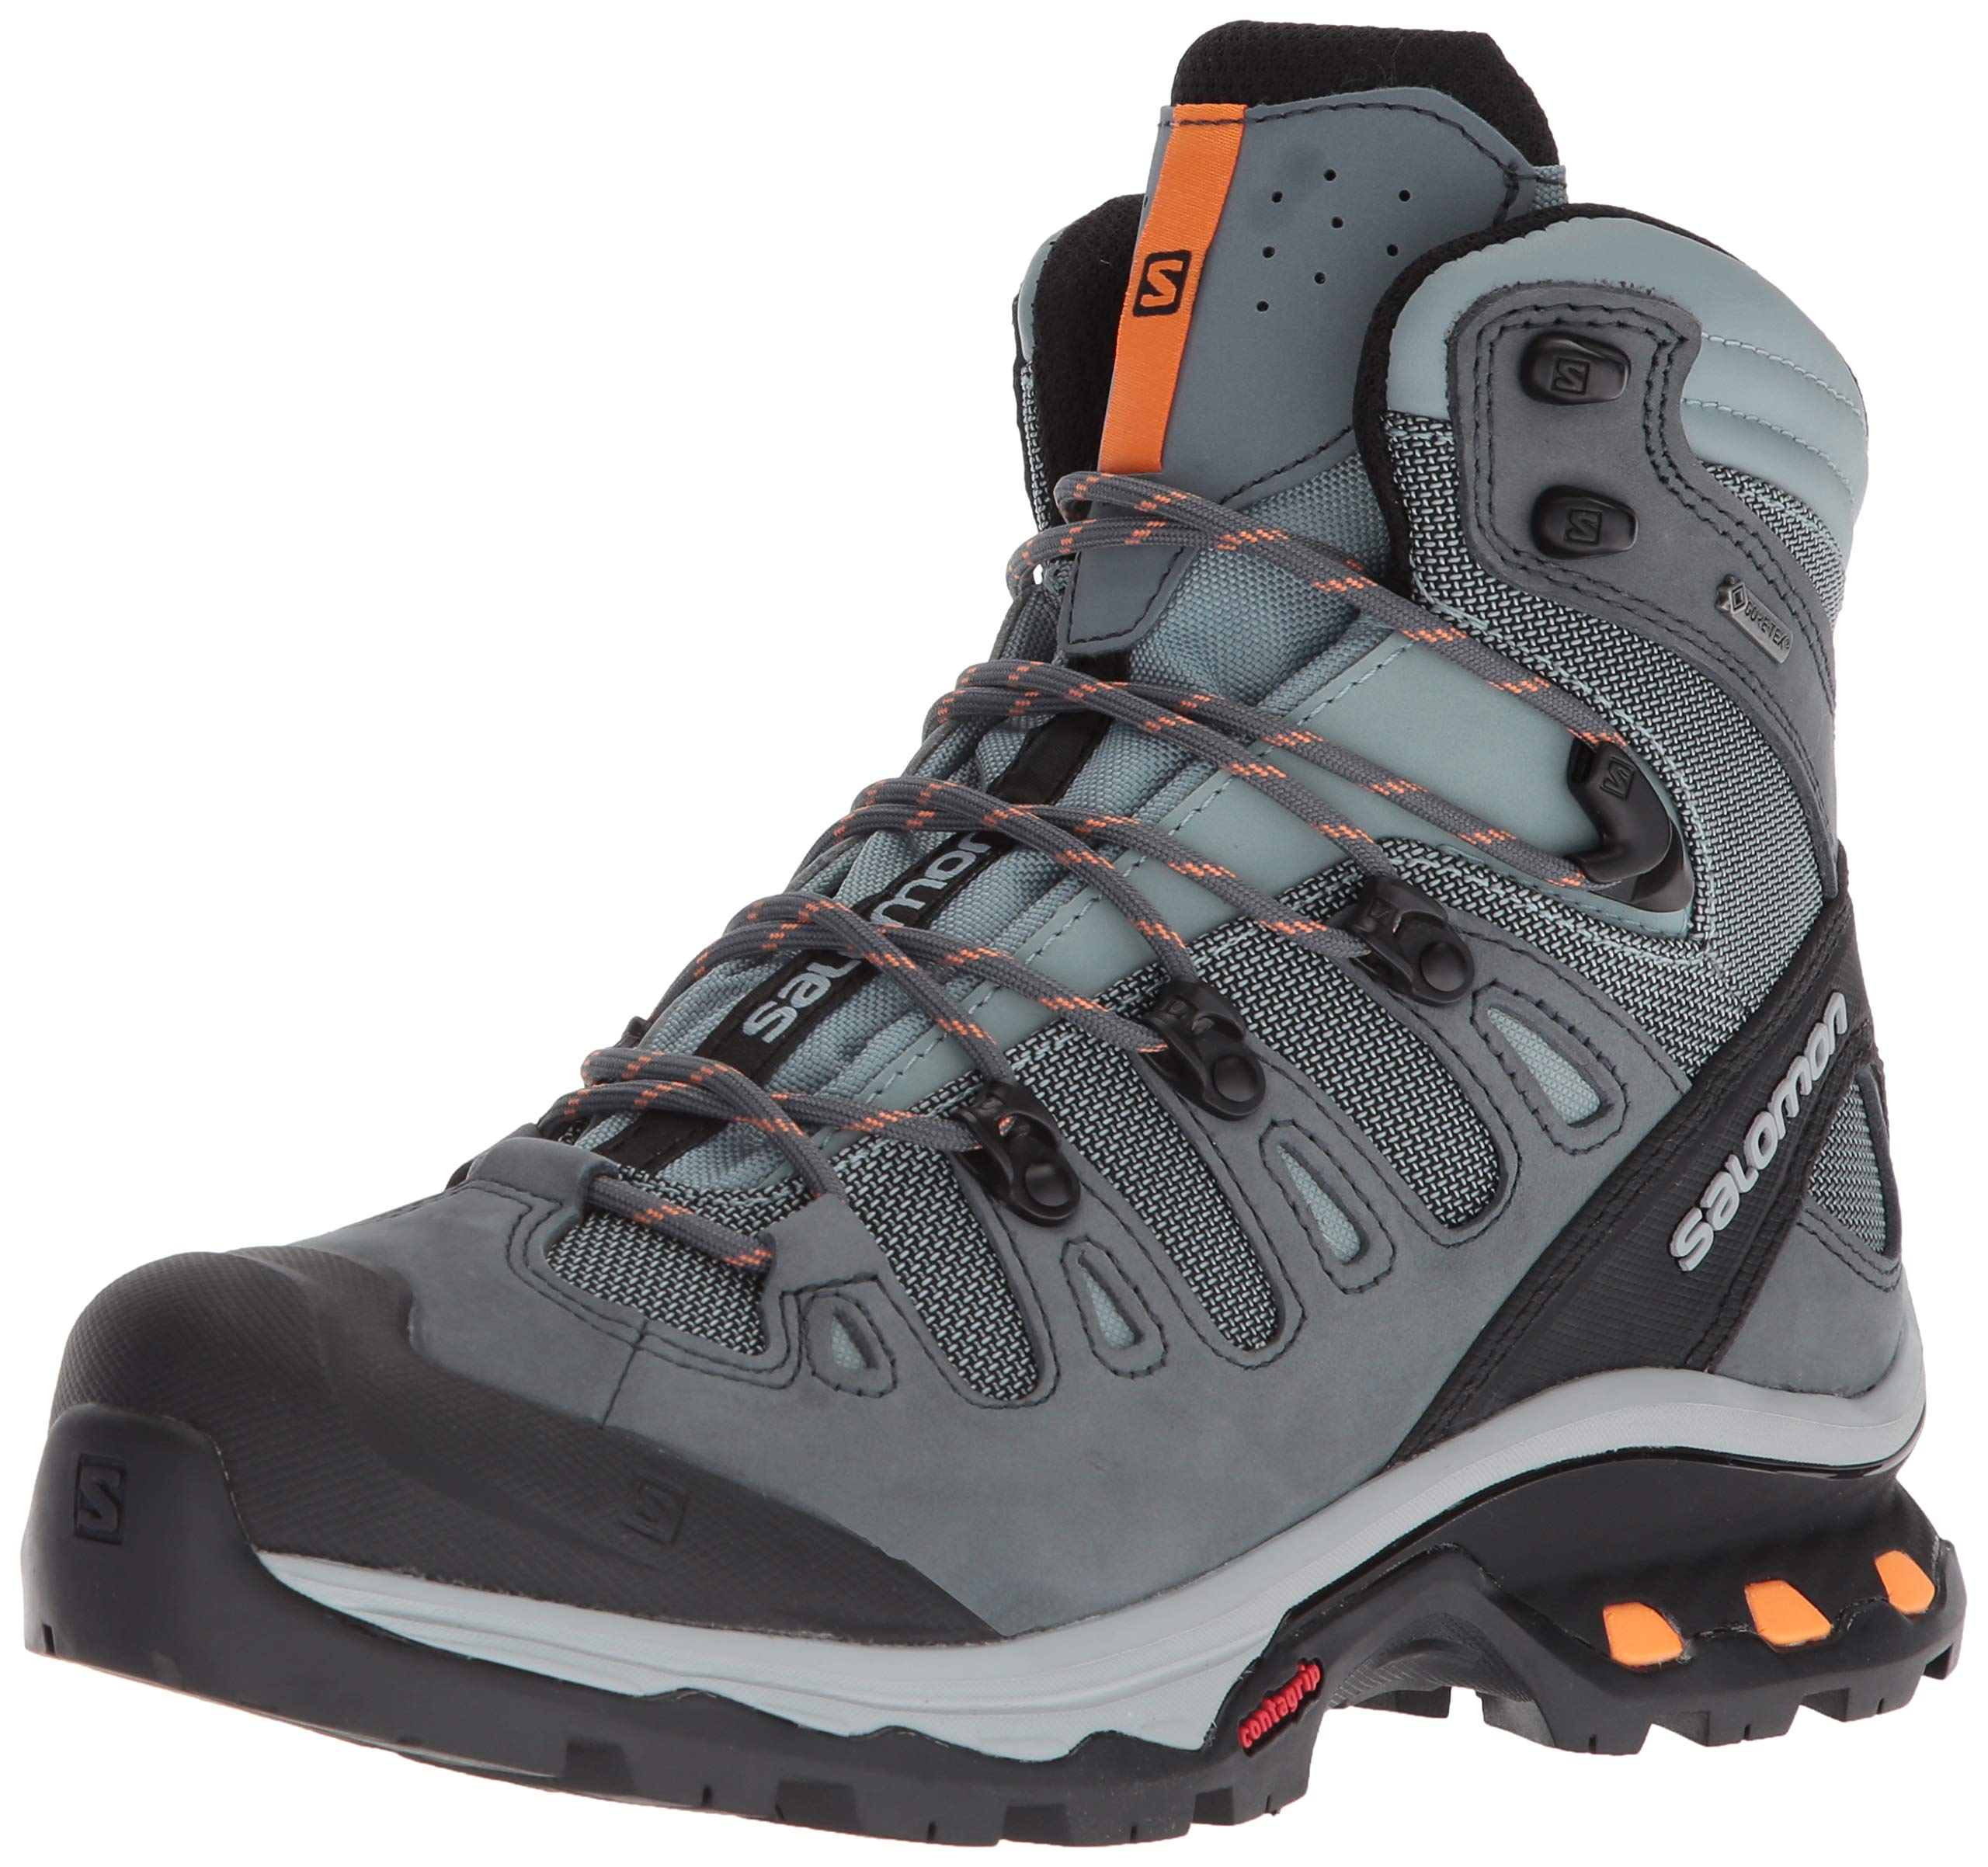 Salomon Women's Quest 4D 3 Gtx W Backpacking Boots, Lead/Stormy Weather, 6 B US